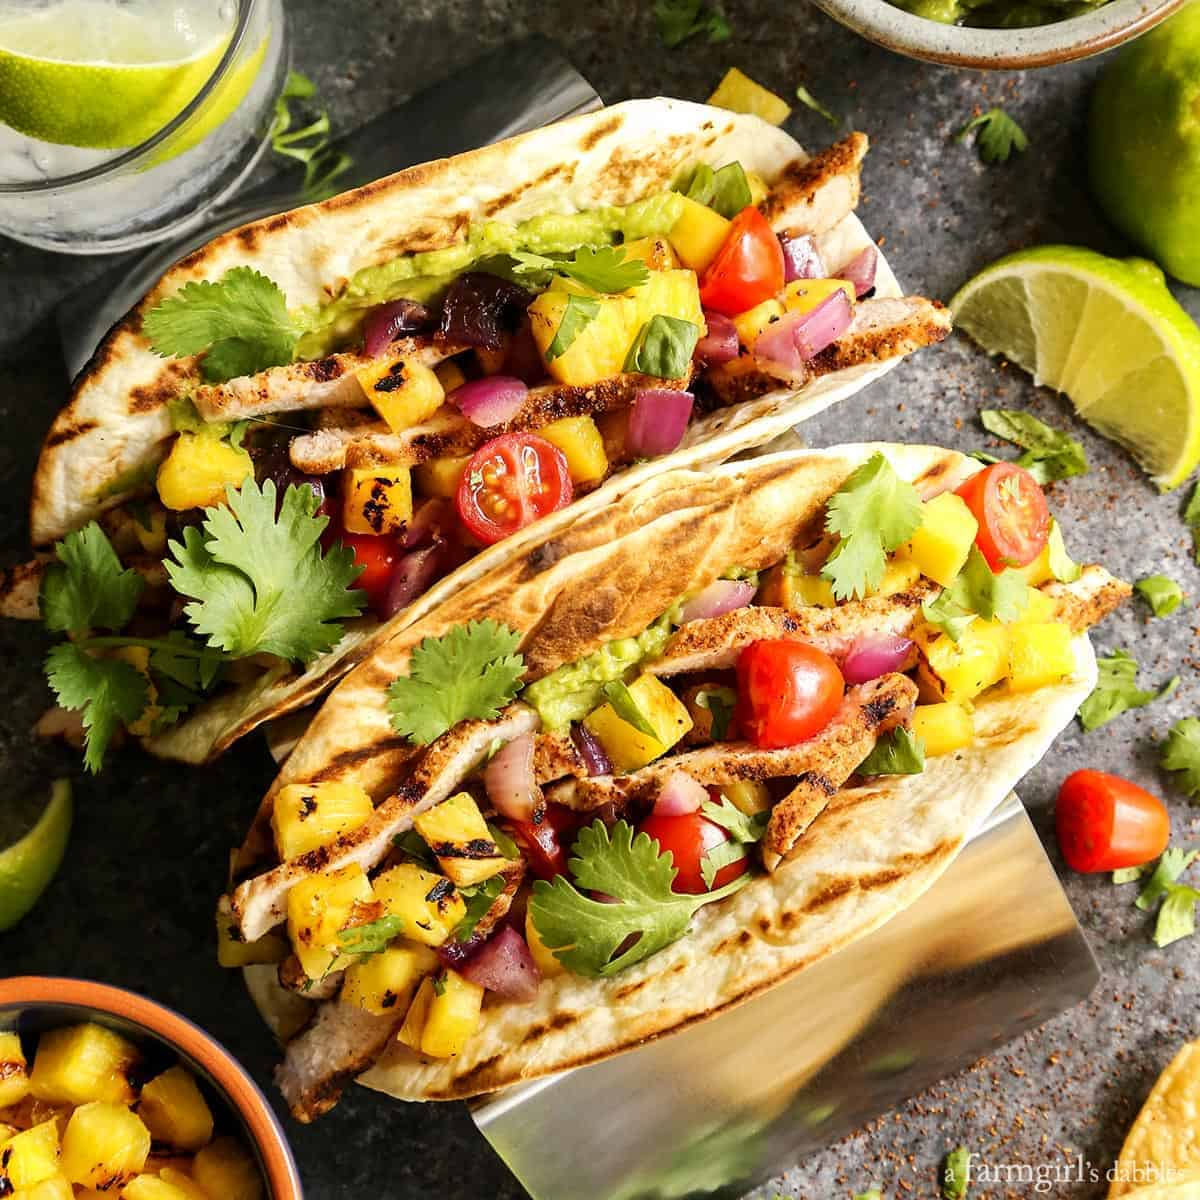 Grilled Pork and Pineapple Tacos from afarmgirlsdabbles.com